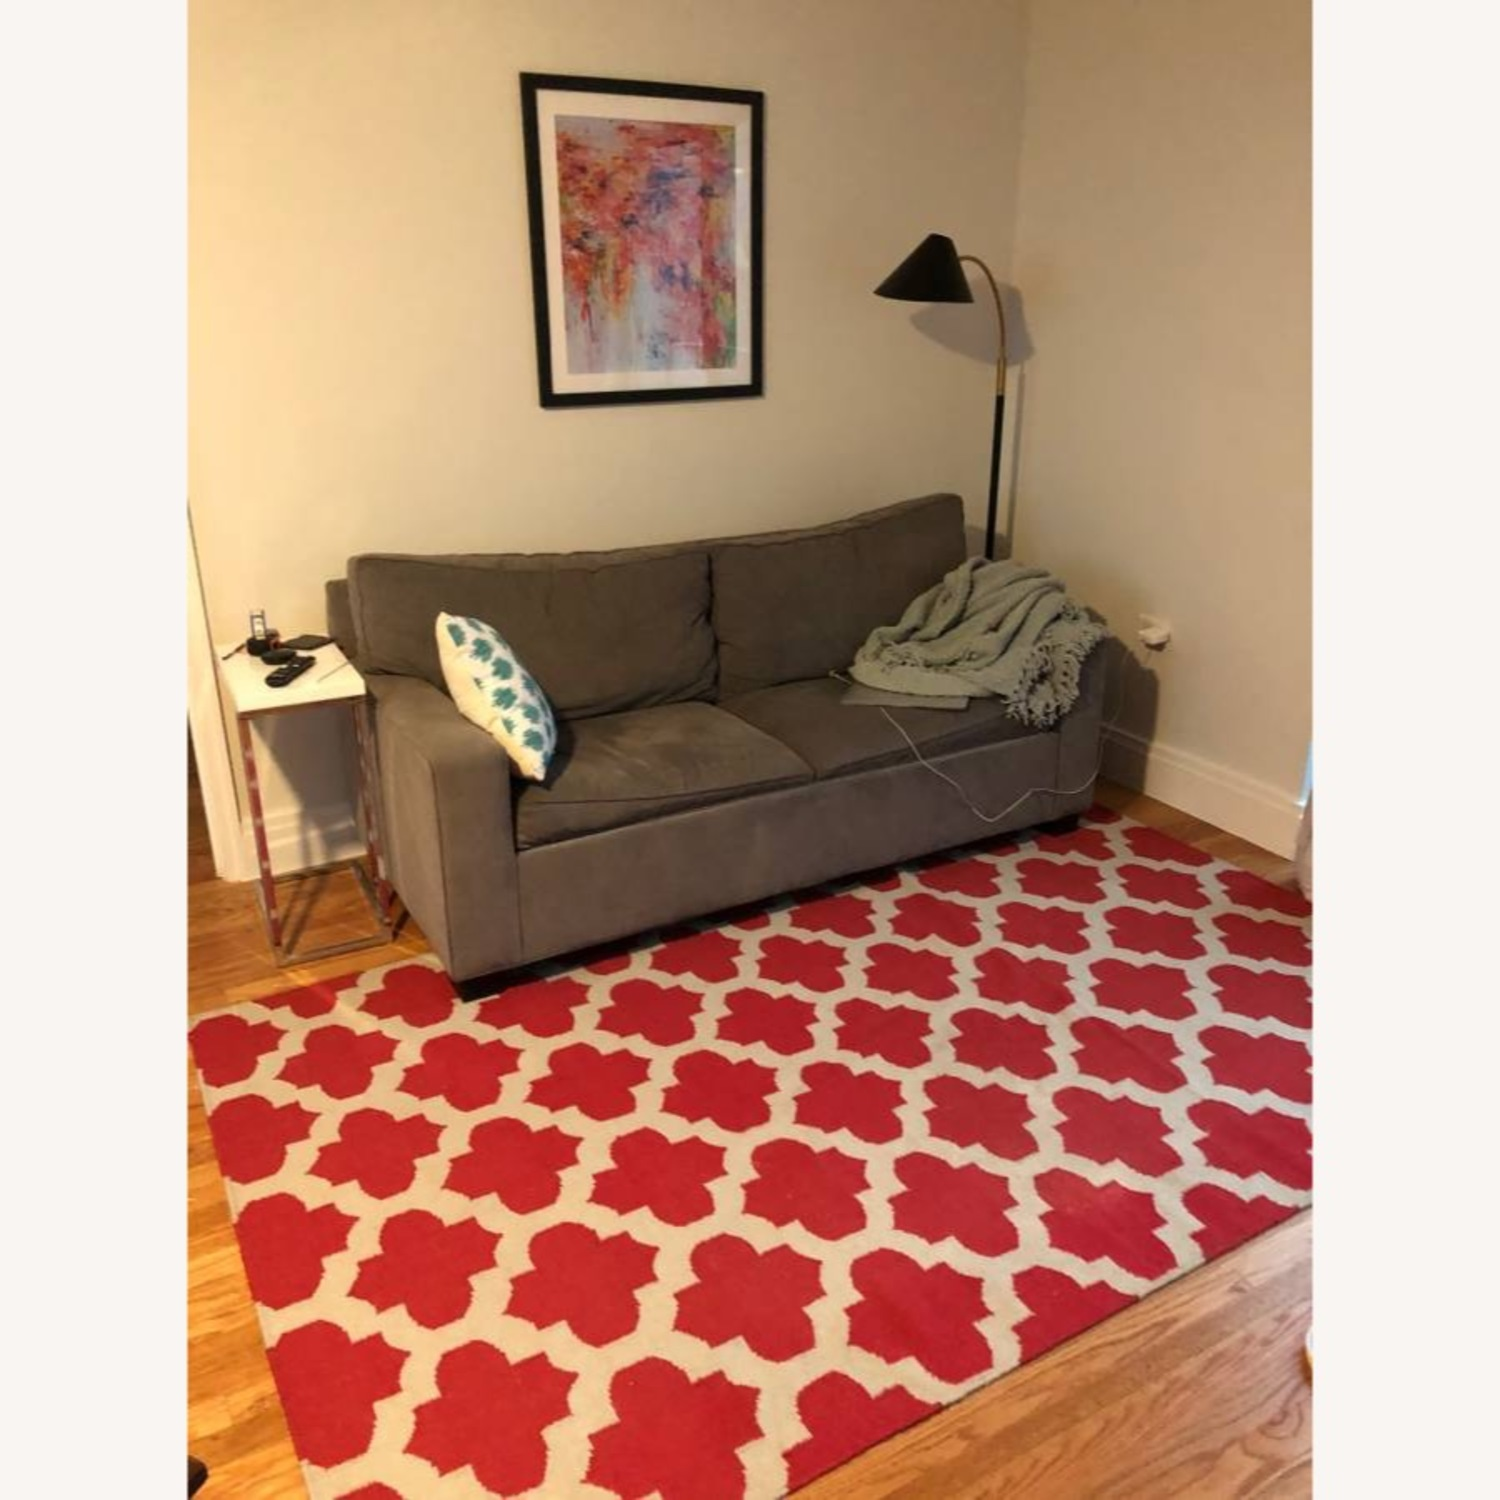 Safavieh Red & White Moroccan Style Rug - image-2